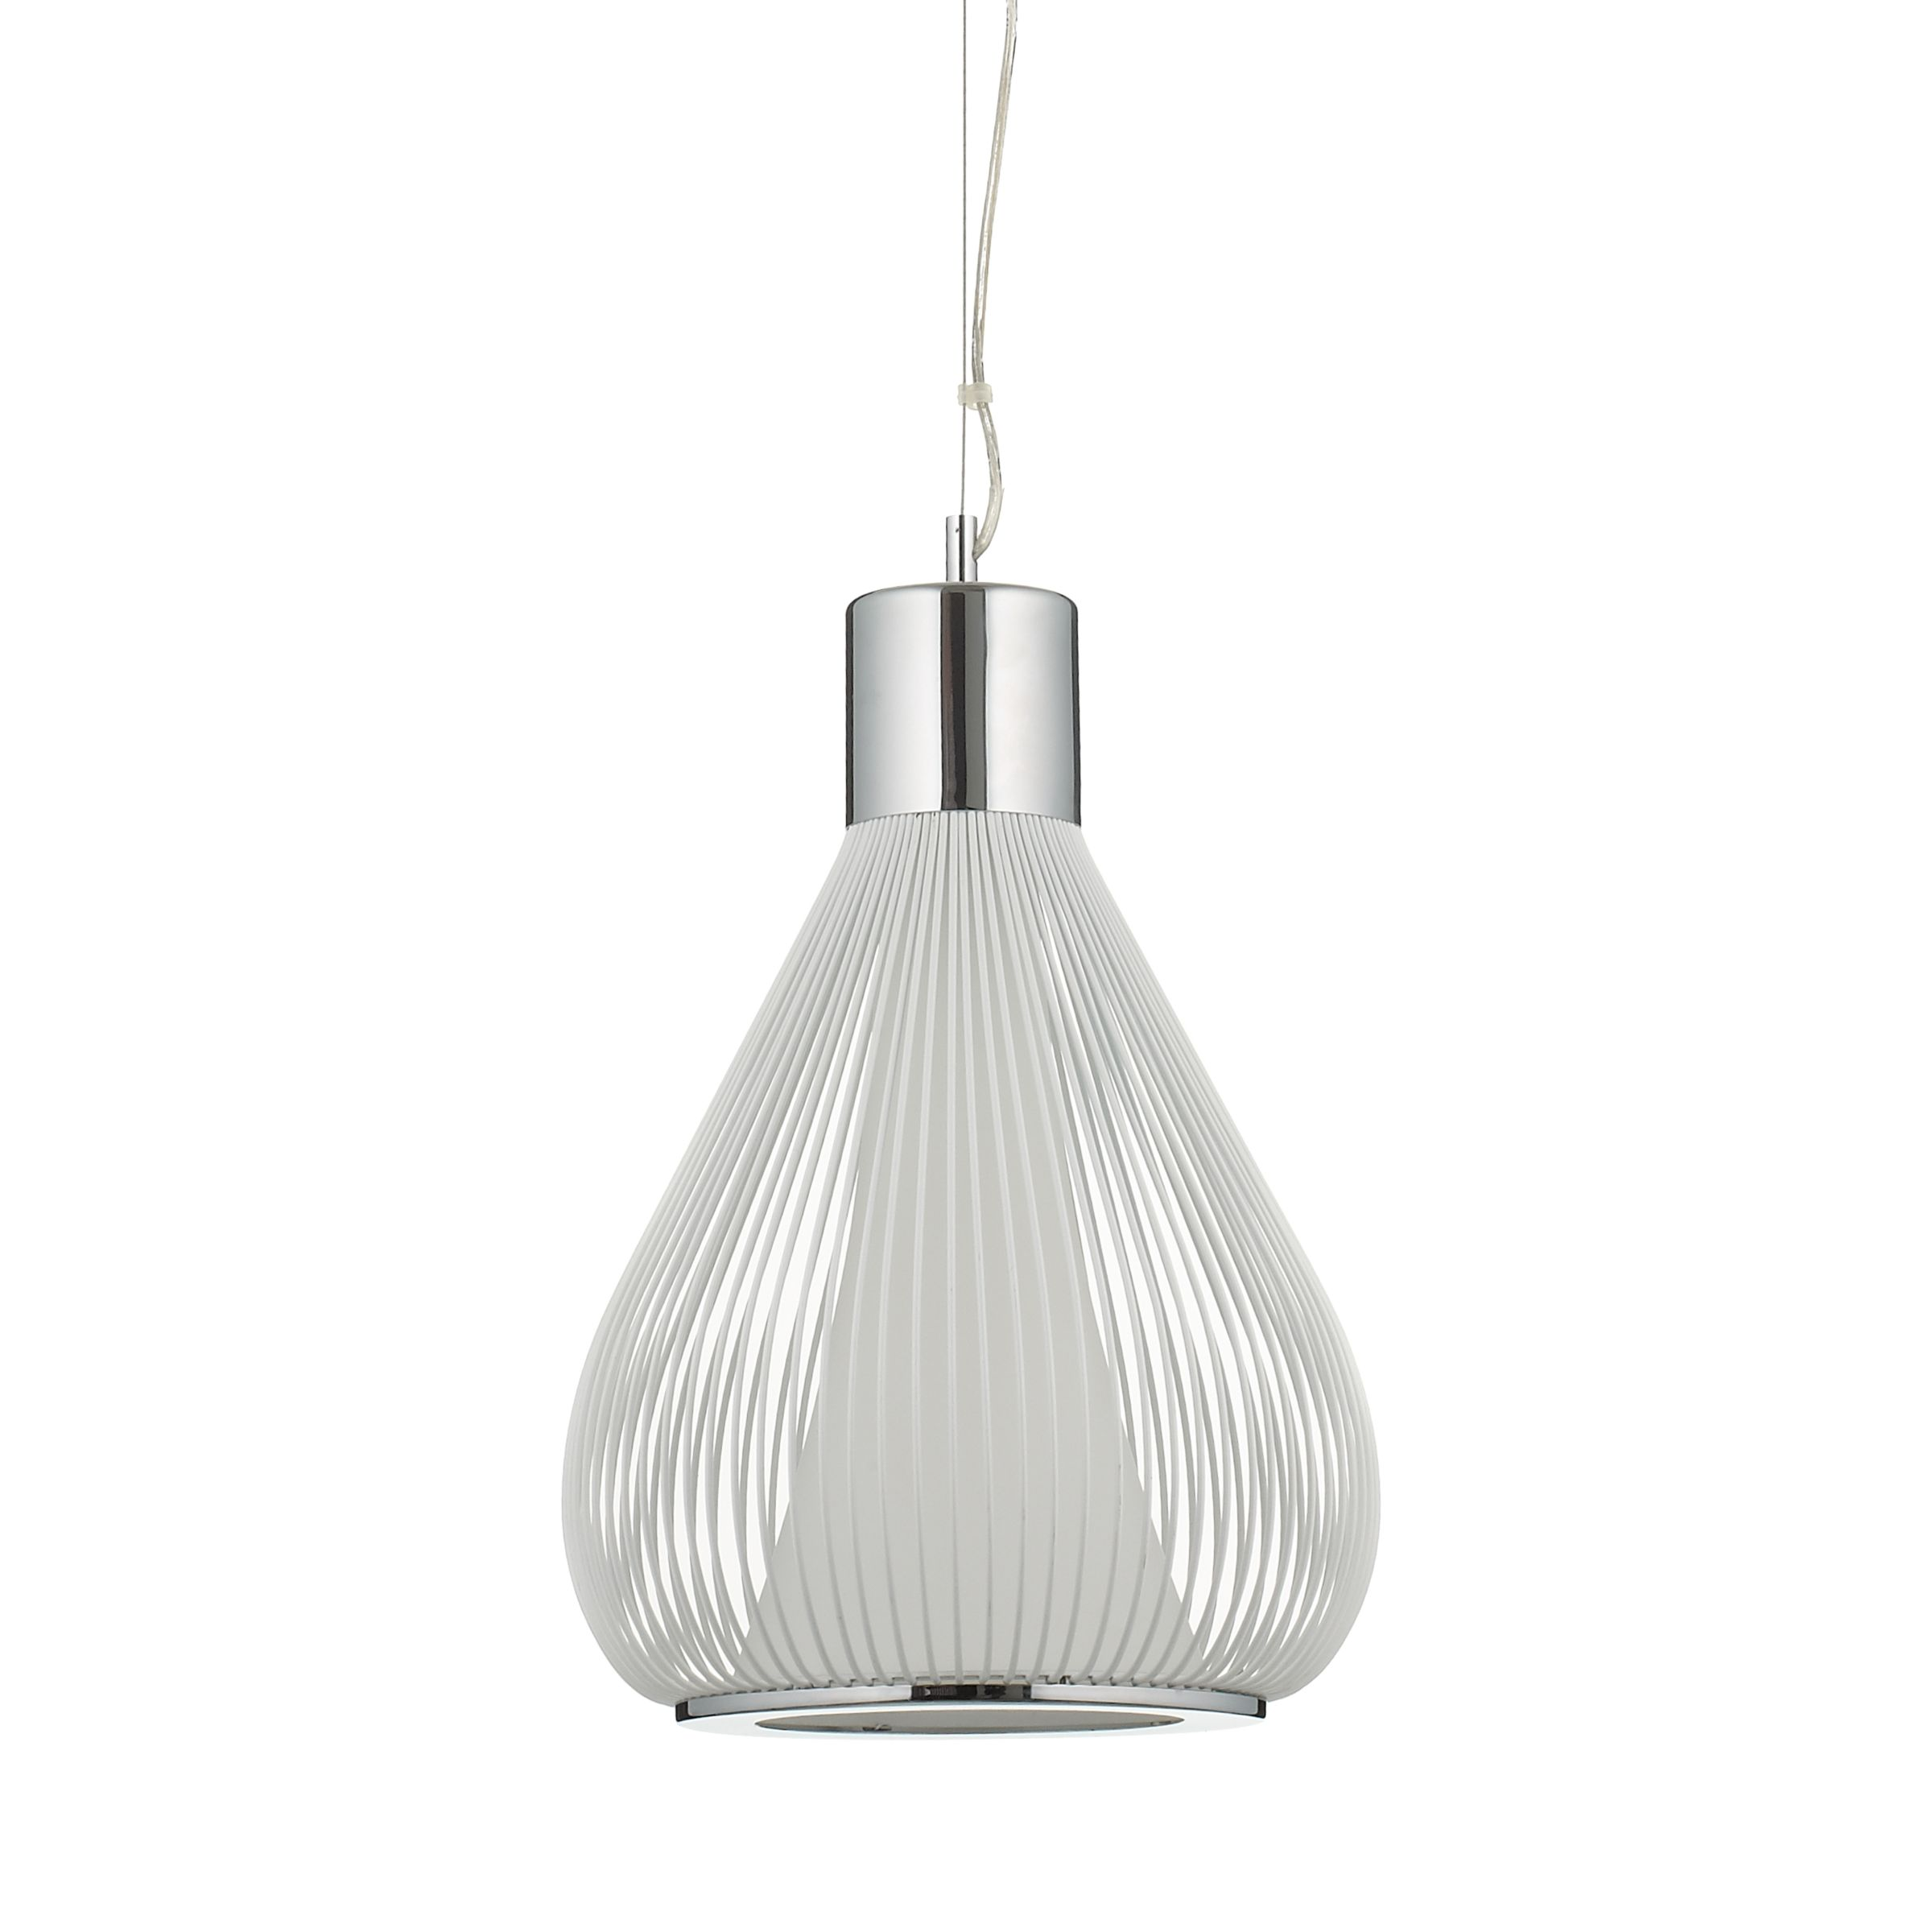 John Lewis Malmo Pendant Light at John Lewis